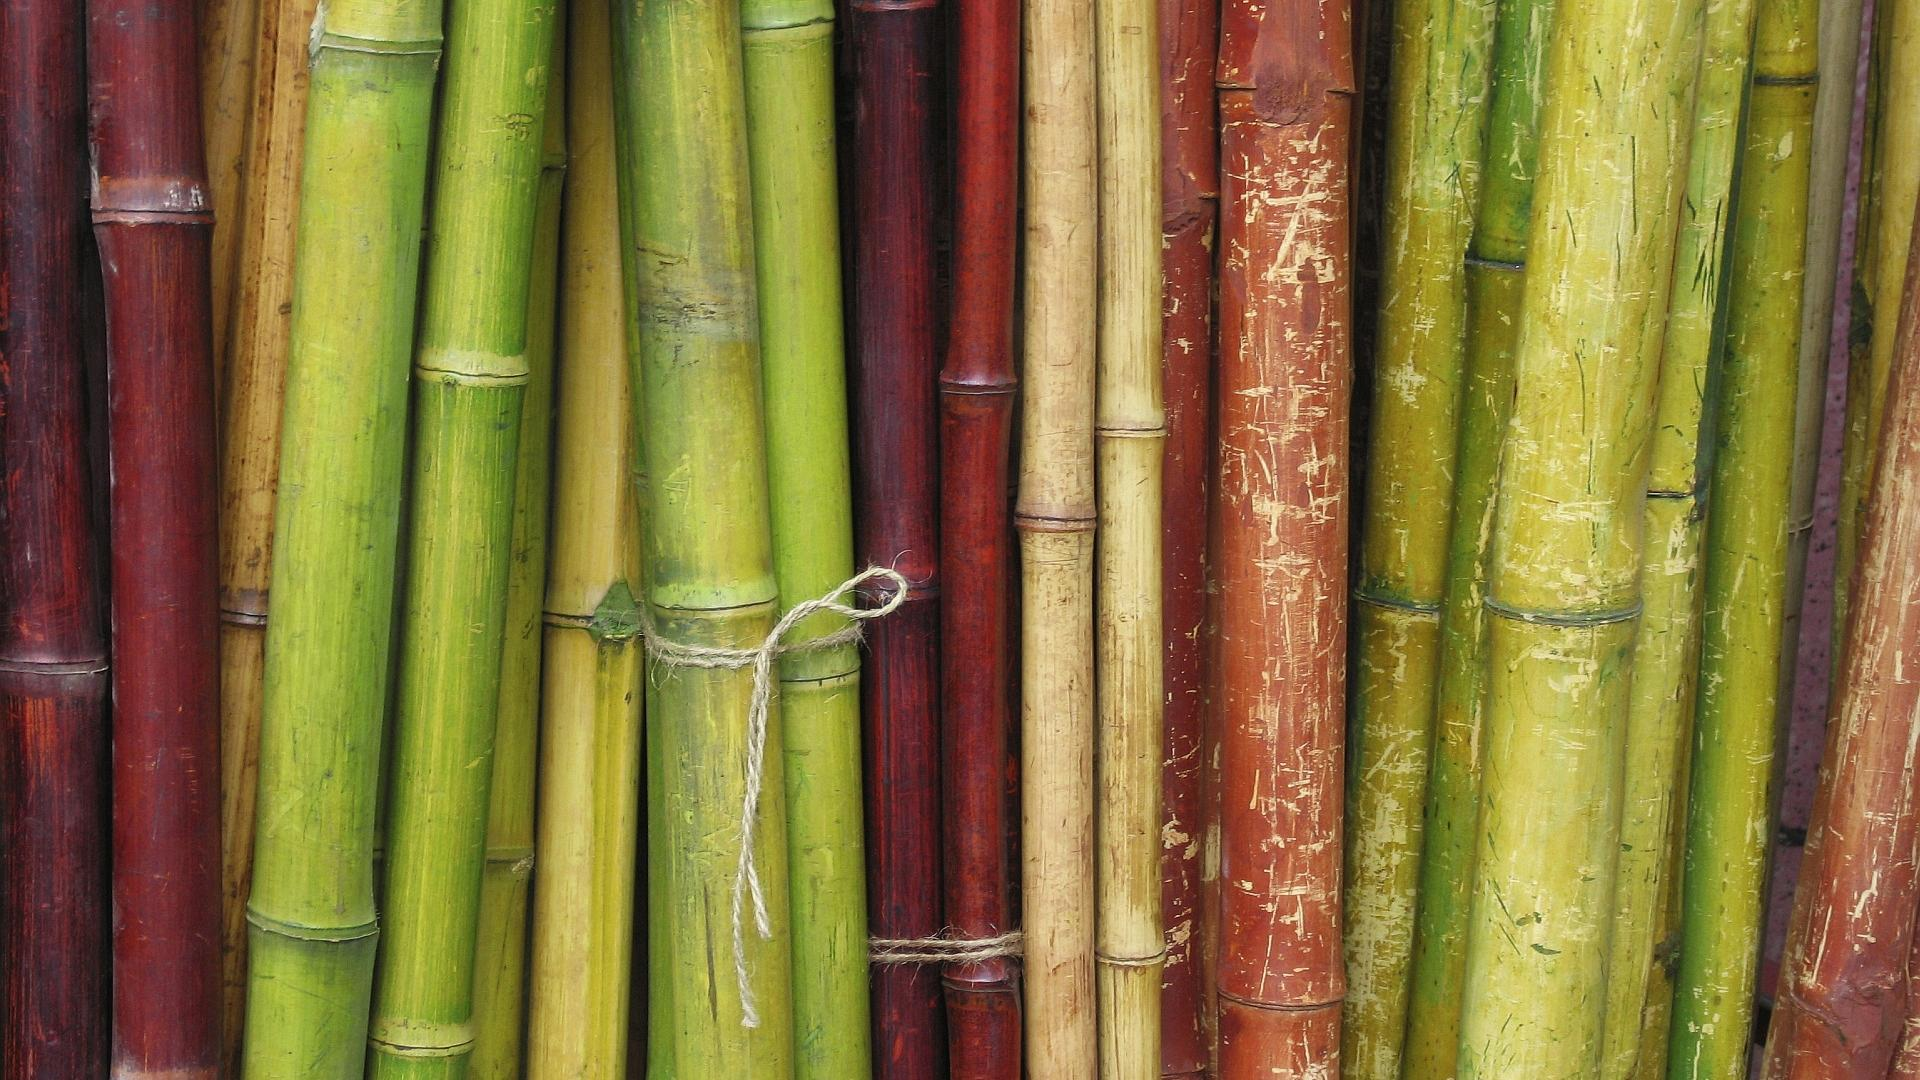 Bamboo wallpapers best wallpapers for Bamboo wallpaper for walls